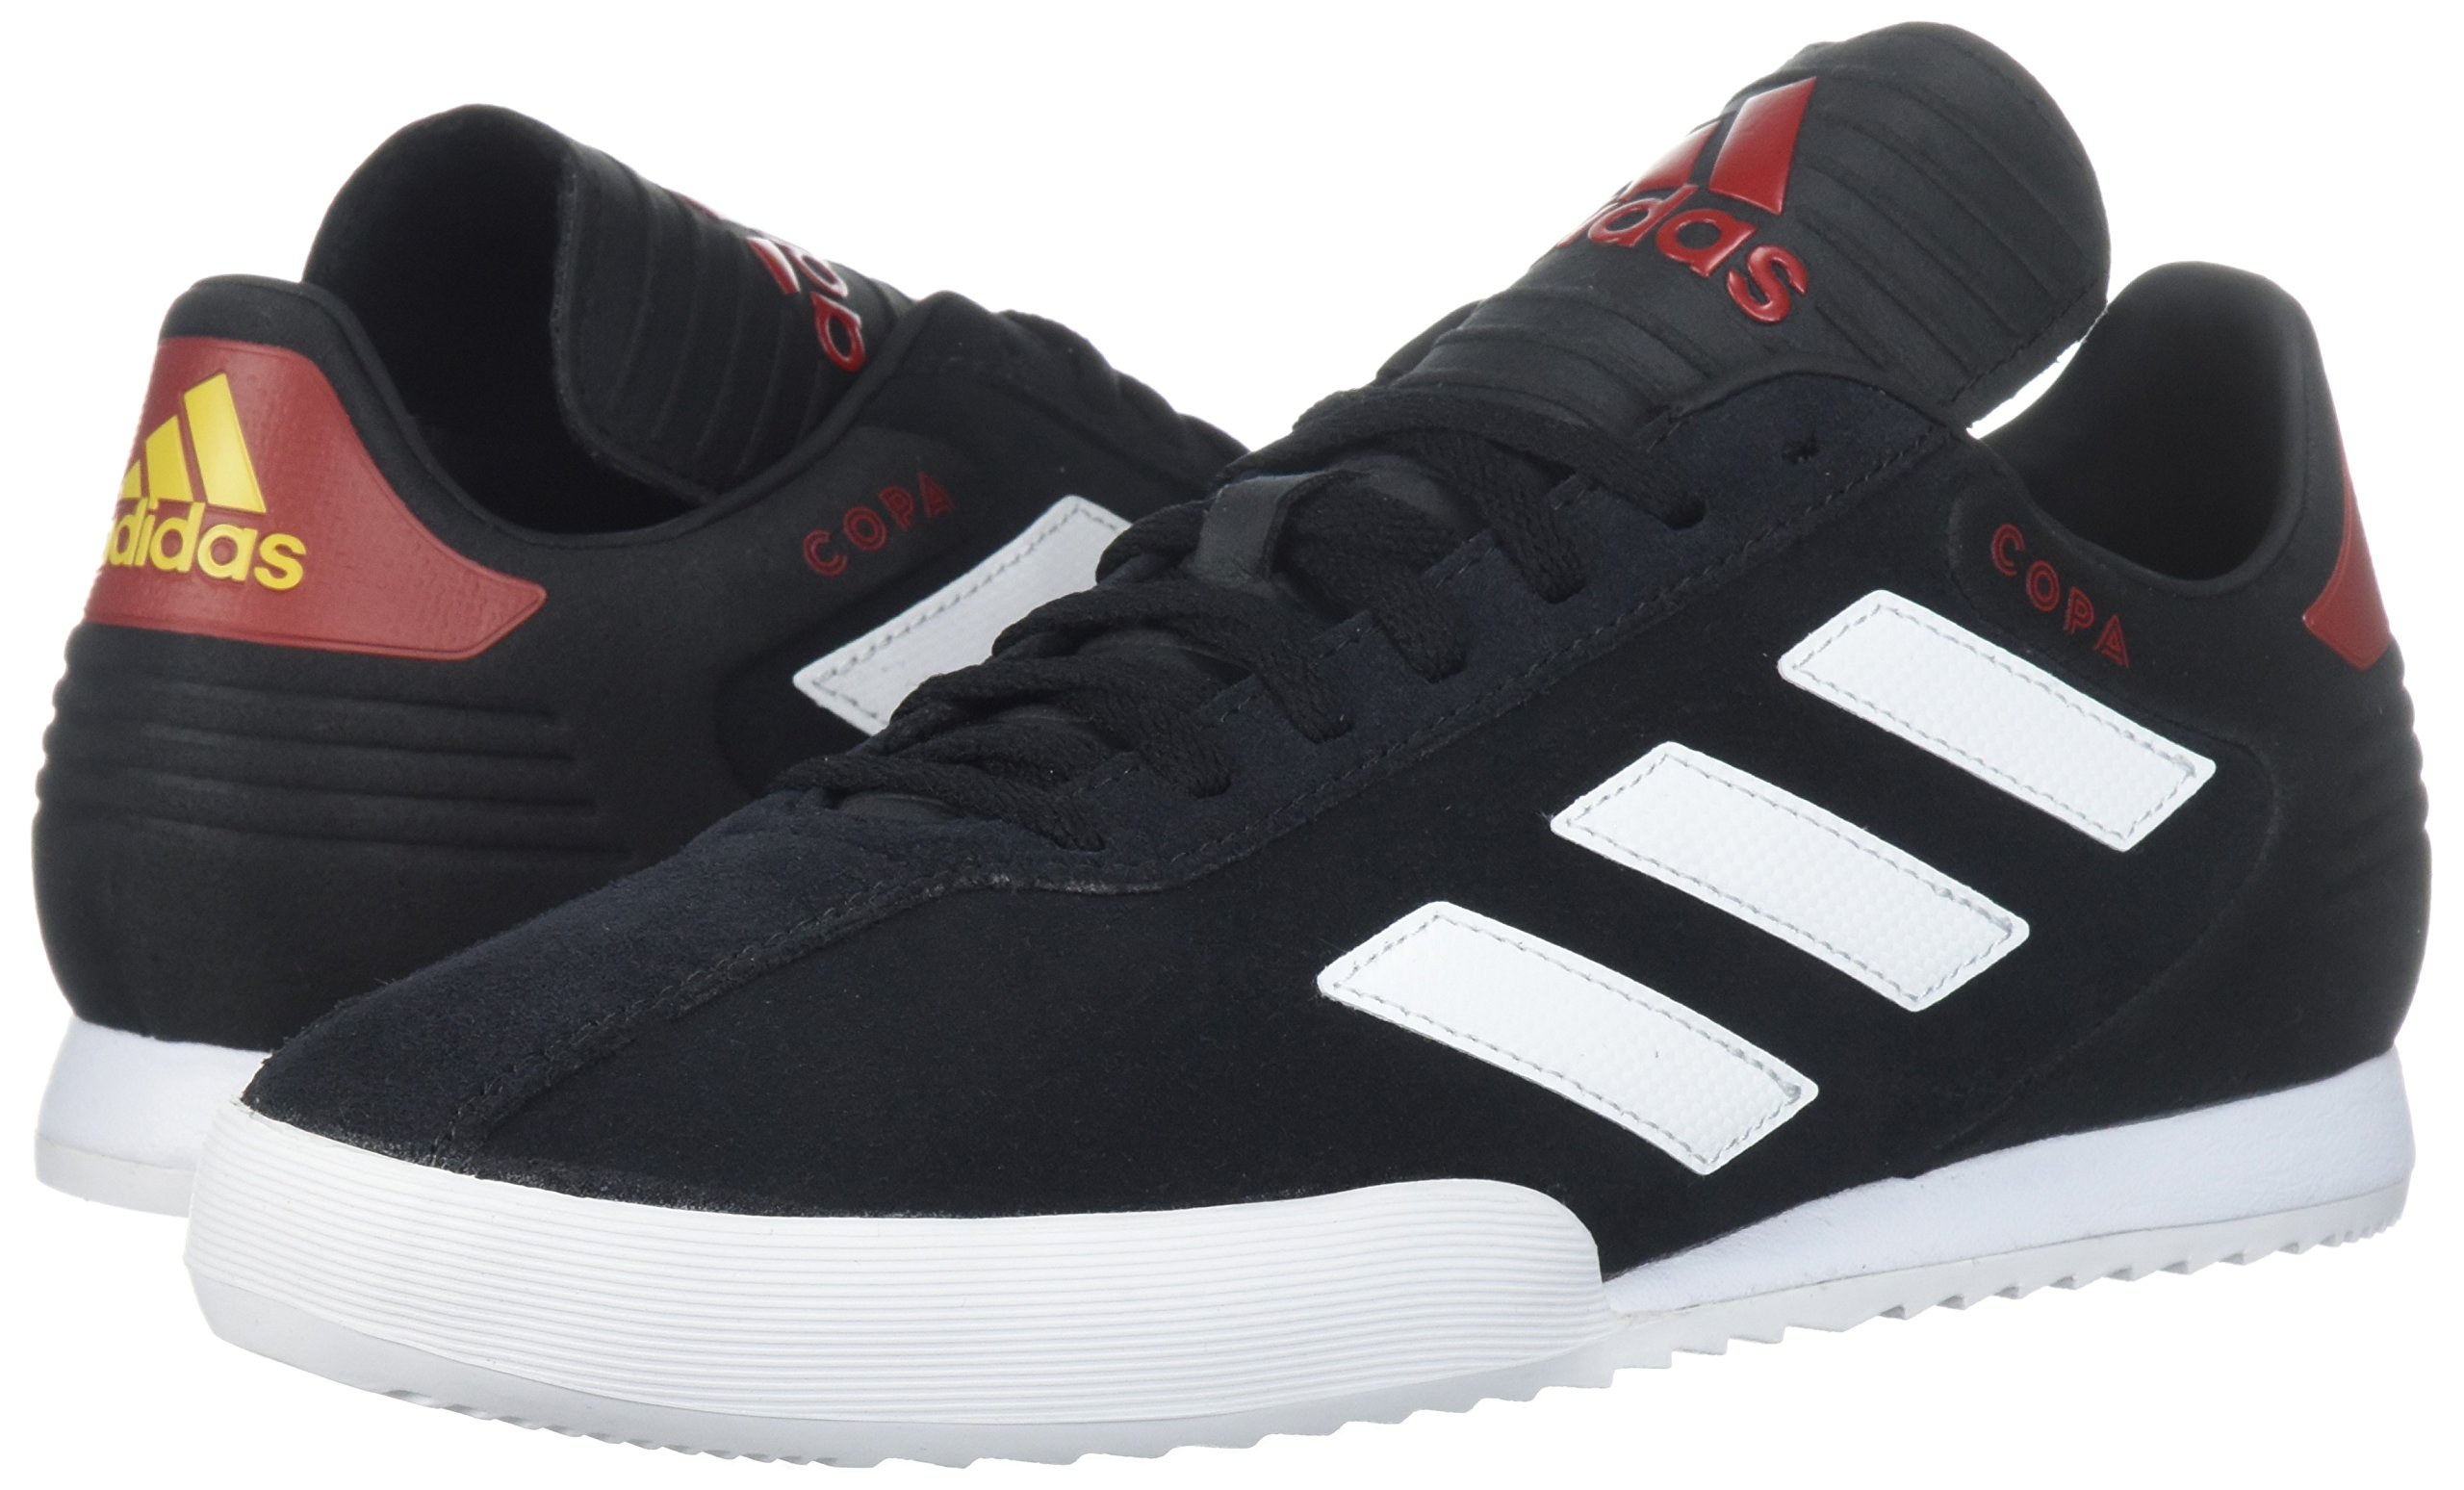 adidas Men's Copa Super Soccer Shoe, Black/White/Power Red, 9 M US by adidas (Image #6)